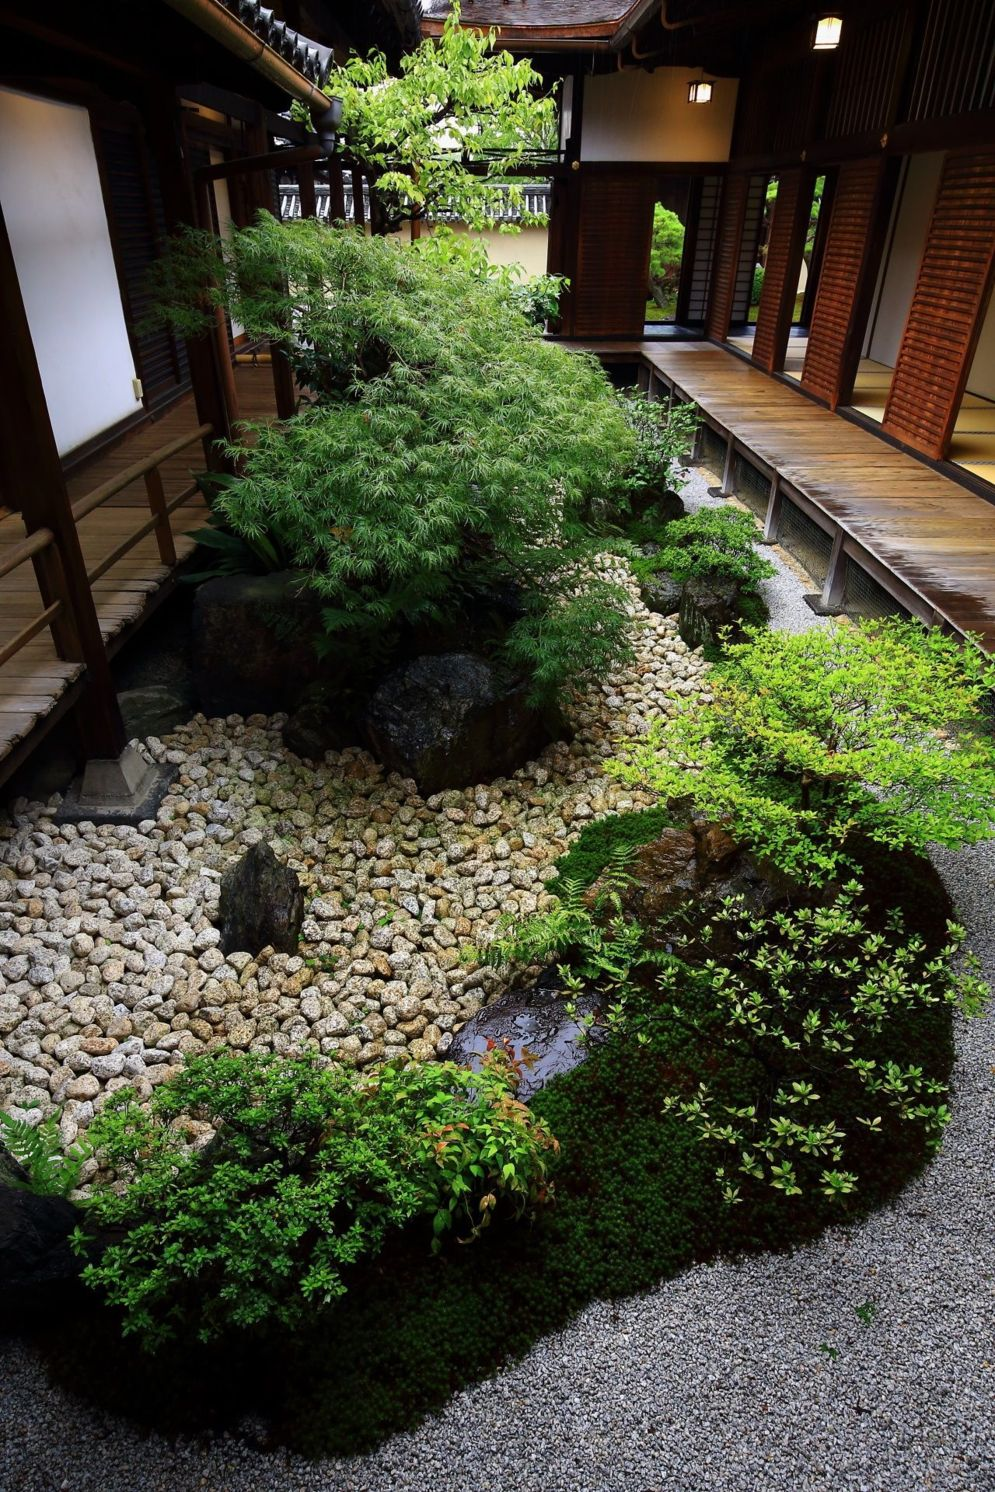 Green outdoor ideas with calming vibes from Zen garden style showing harmonious and balanced various natural elements Image 39